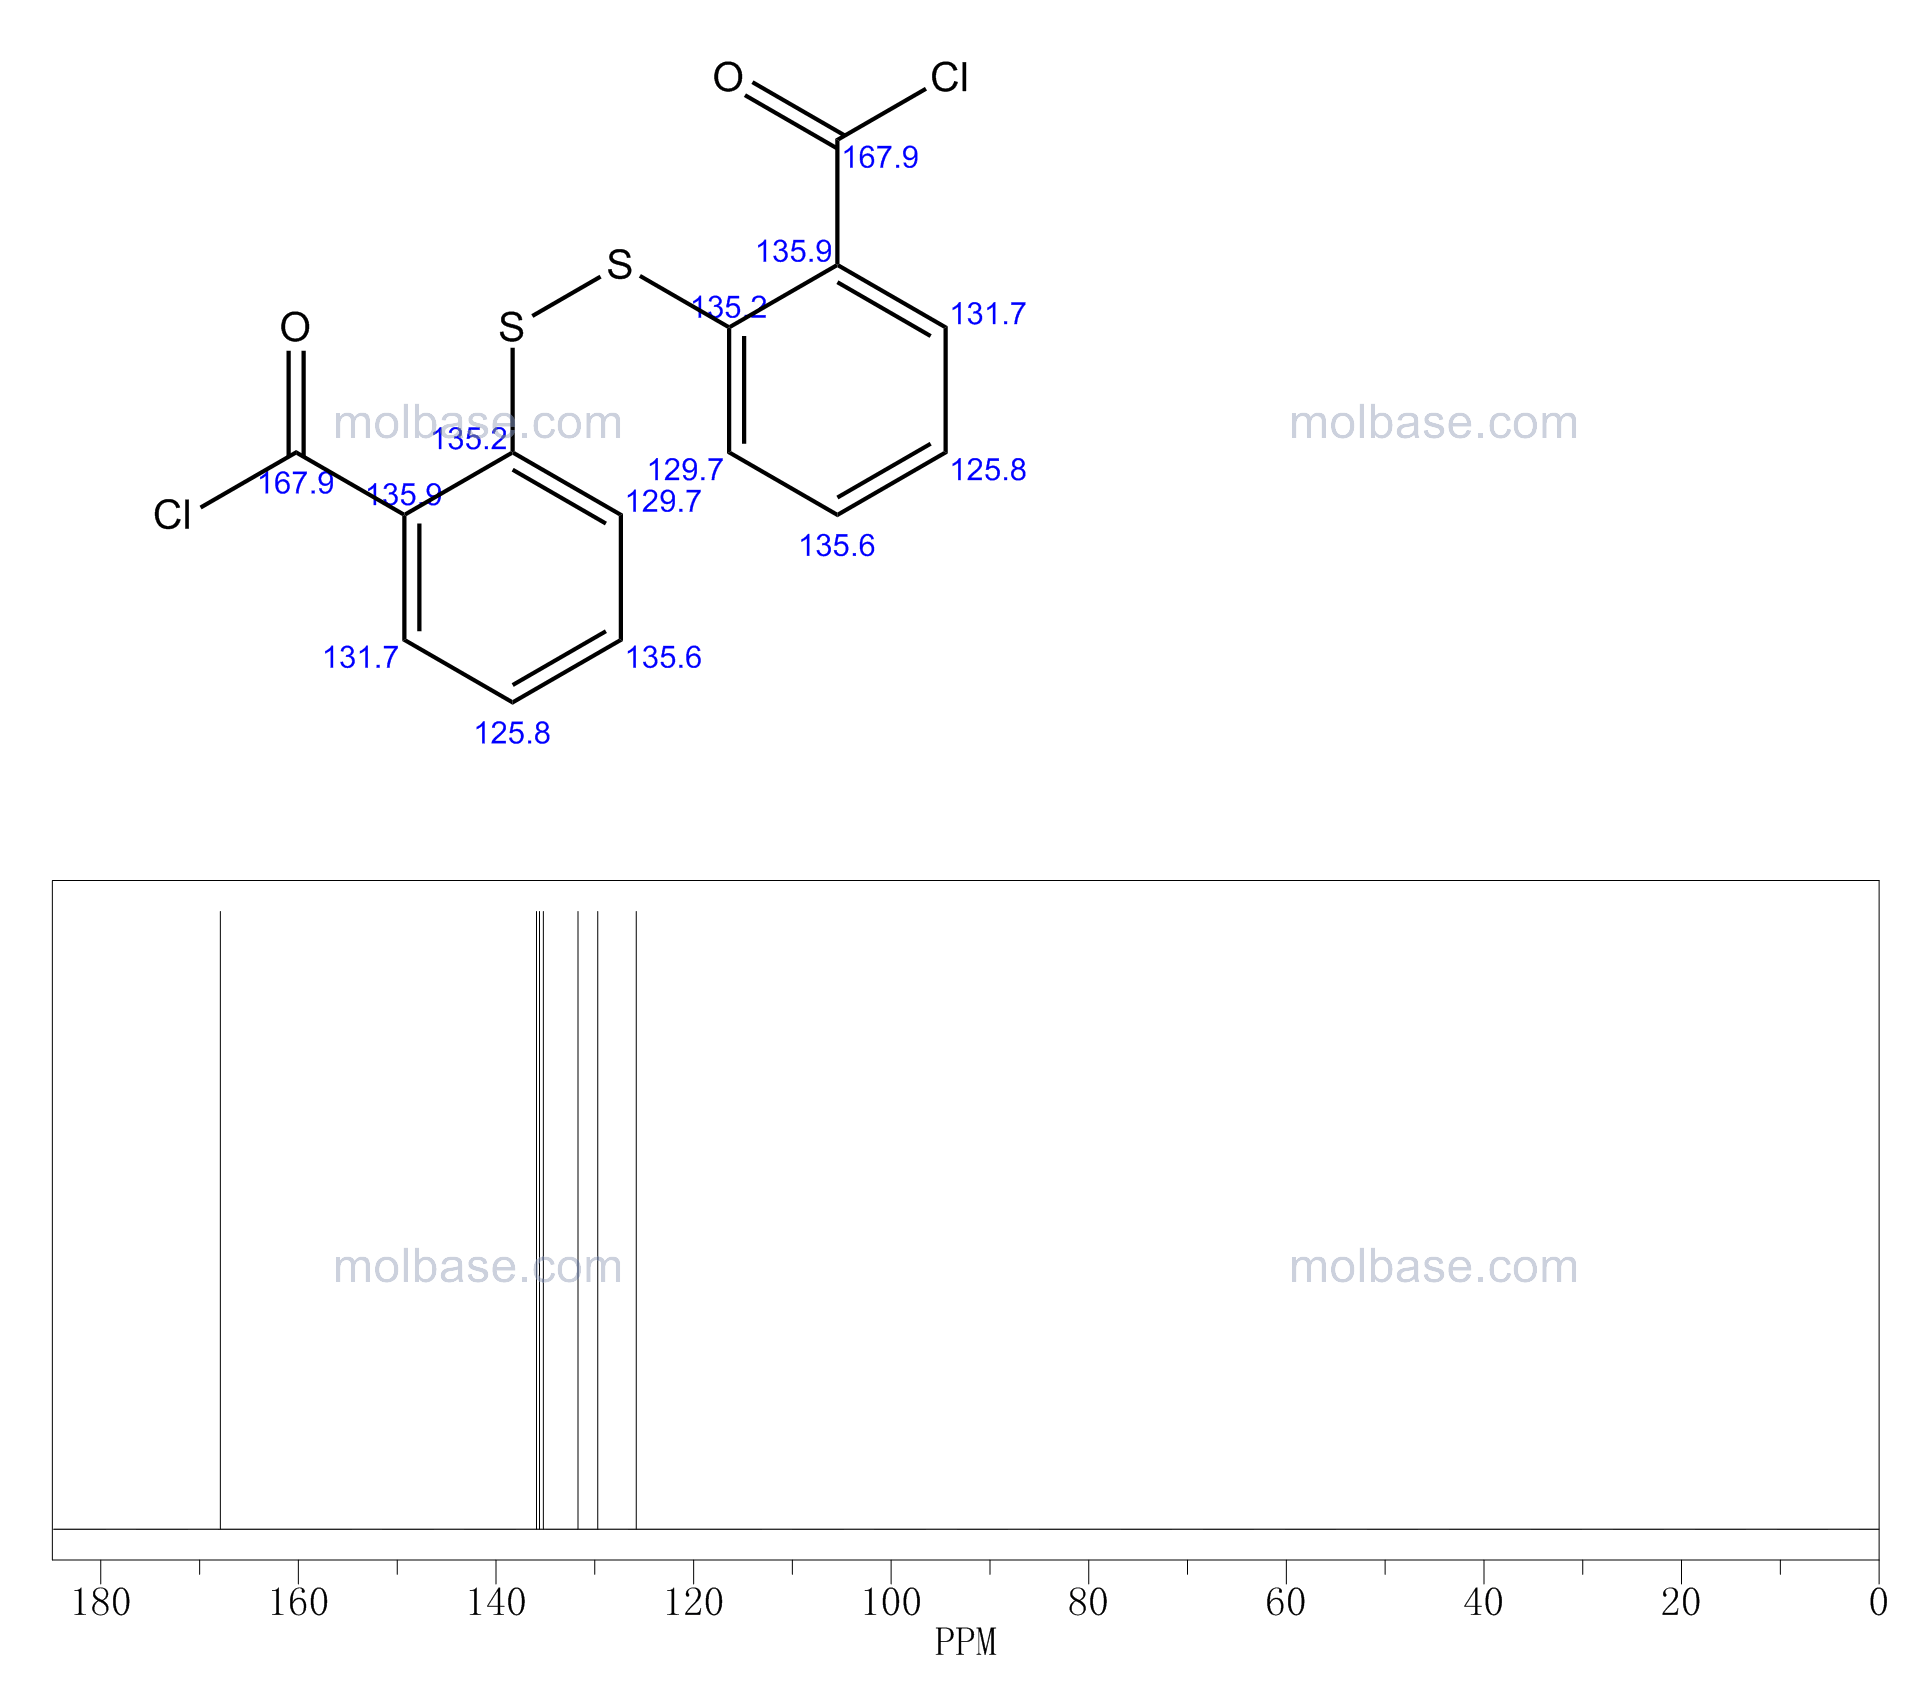 2-[(2-carbonochloridoylphenyl)disulfanyl]benzoyl chloride NMR spectra analysis, Chemical CAS NO. 19602-82-5 NMR spectral analysis, 2-[(2-carbonochloridoylphenyl)disulfanyl]benzoyl chloride C-NMR spectrum